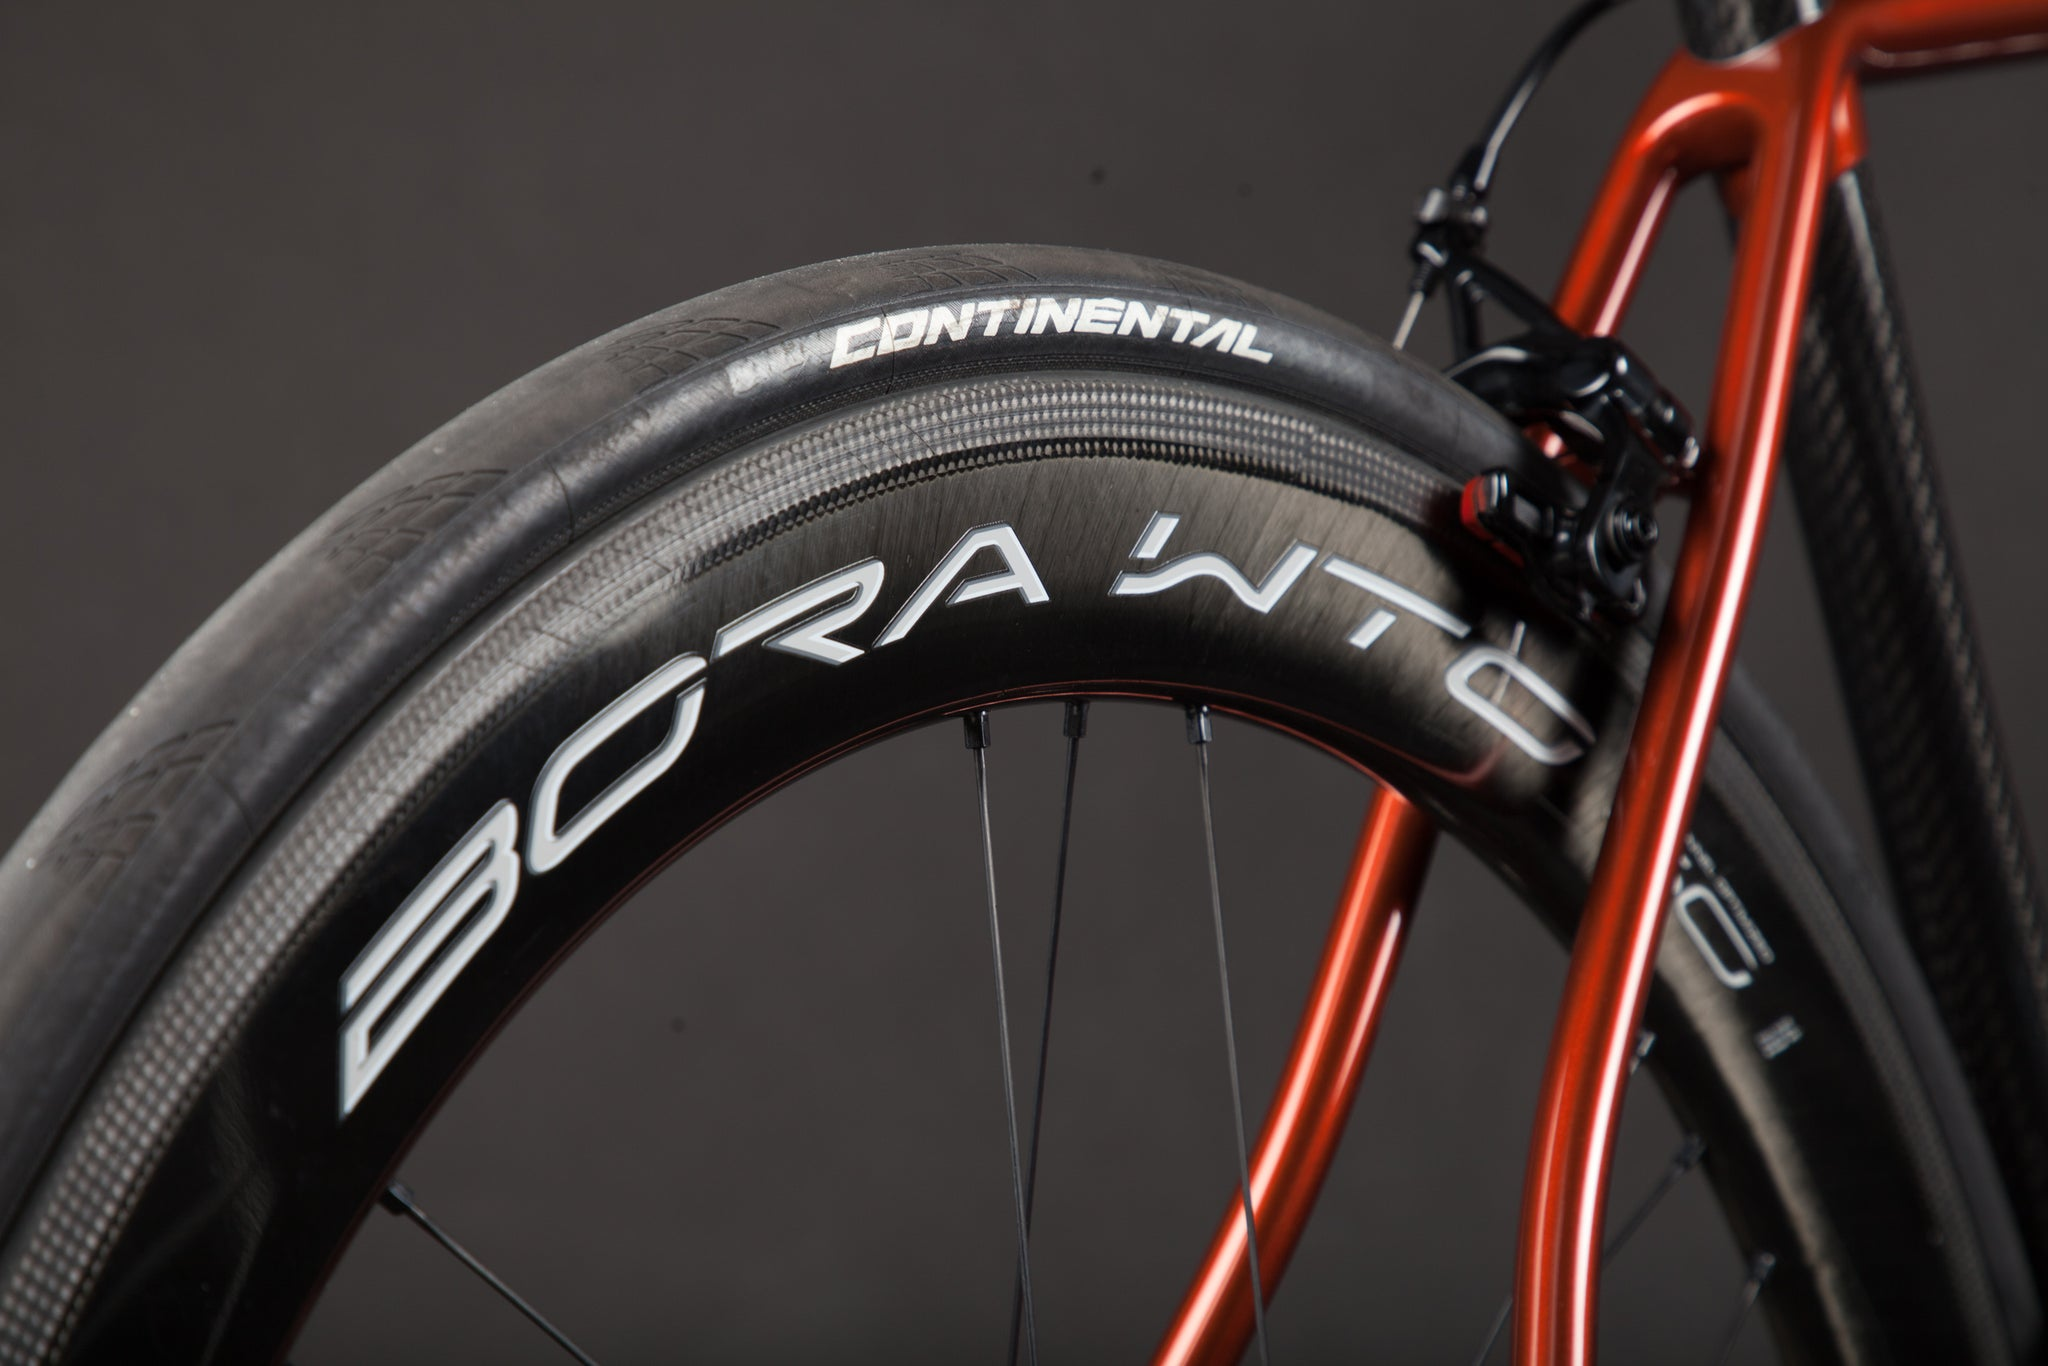 chad's prova speciale rear wheel